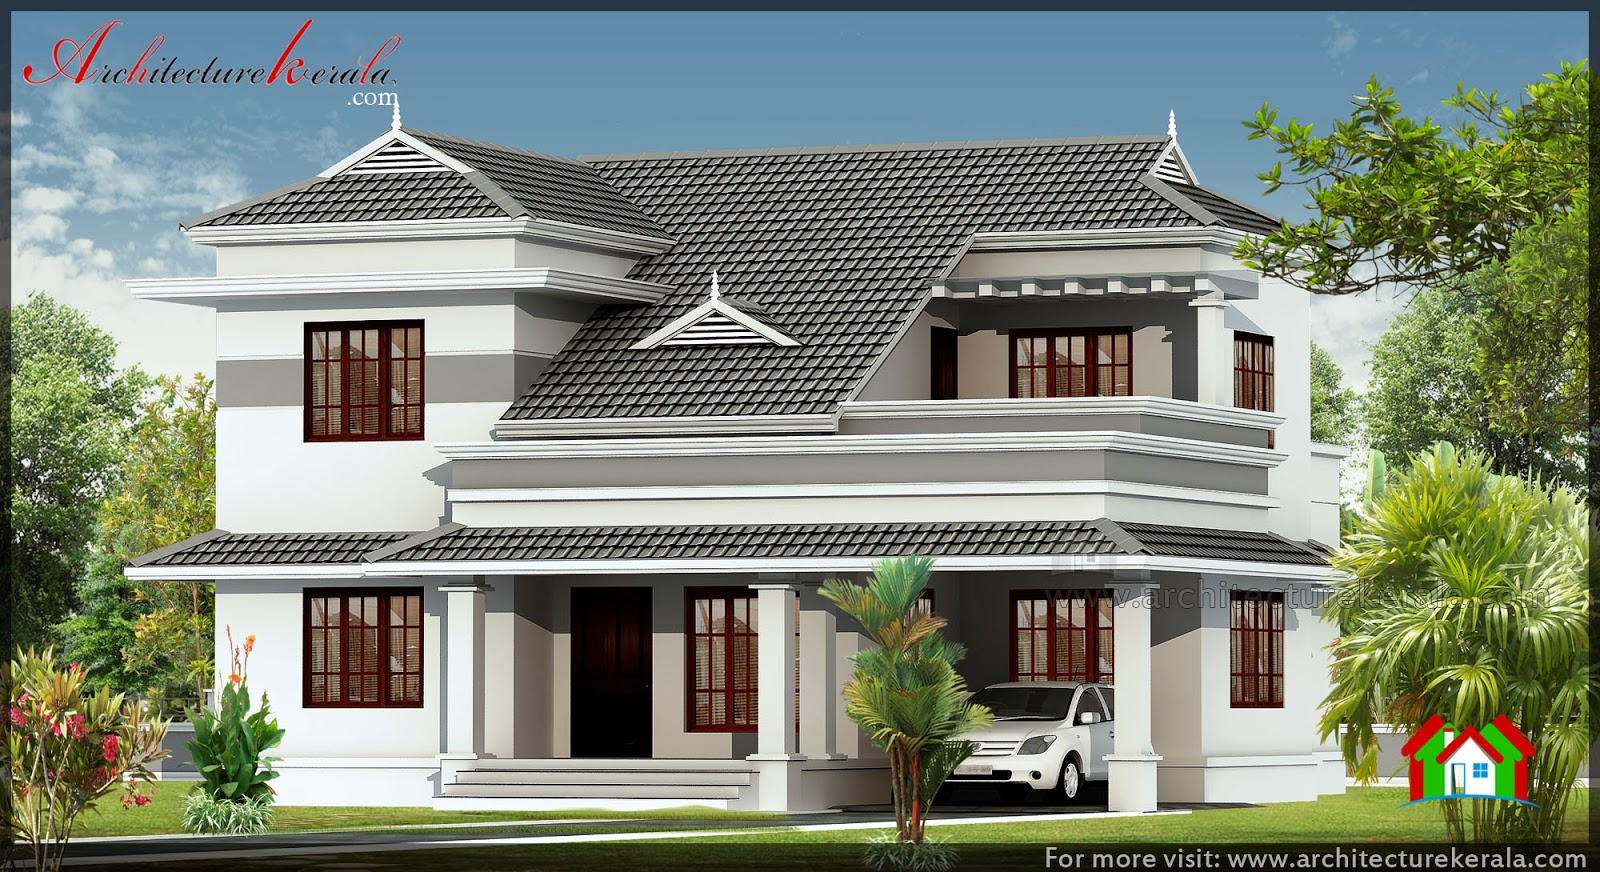 Slope roof style 3 bedroom house architecture kerala for 3 bedroom house in kerala